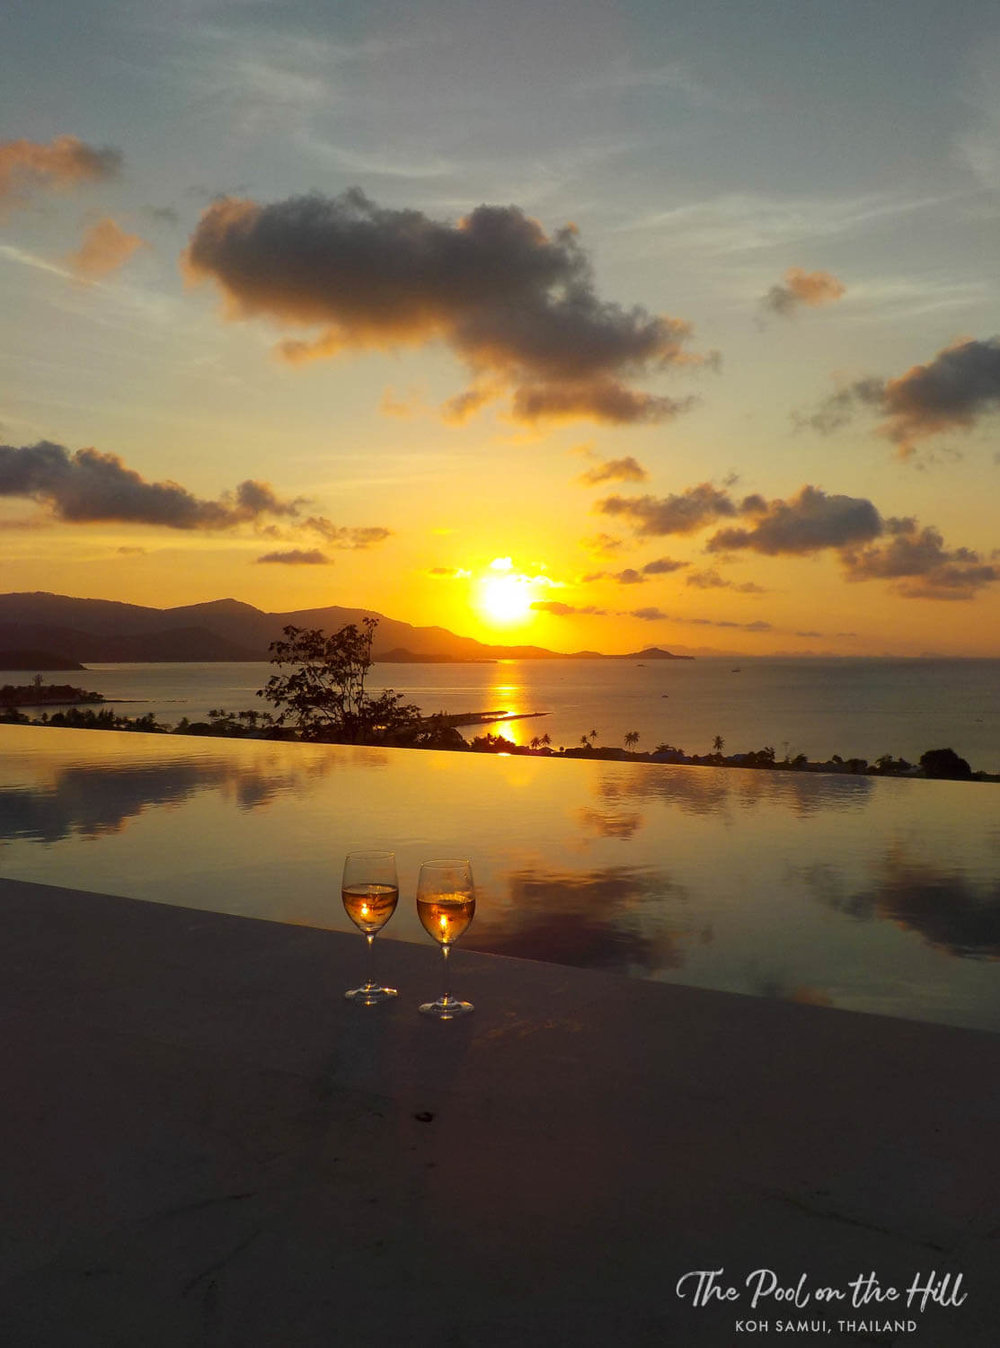 Pool villa Samui: Sunset towards Ang Thong Marine Park, as seen from The Pool on the Hill